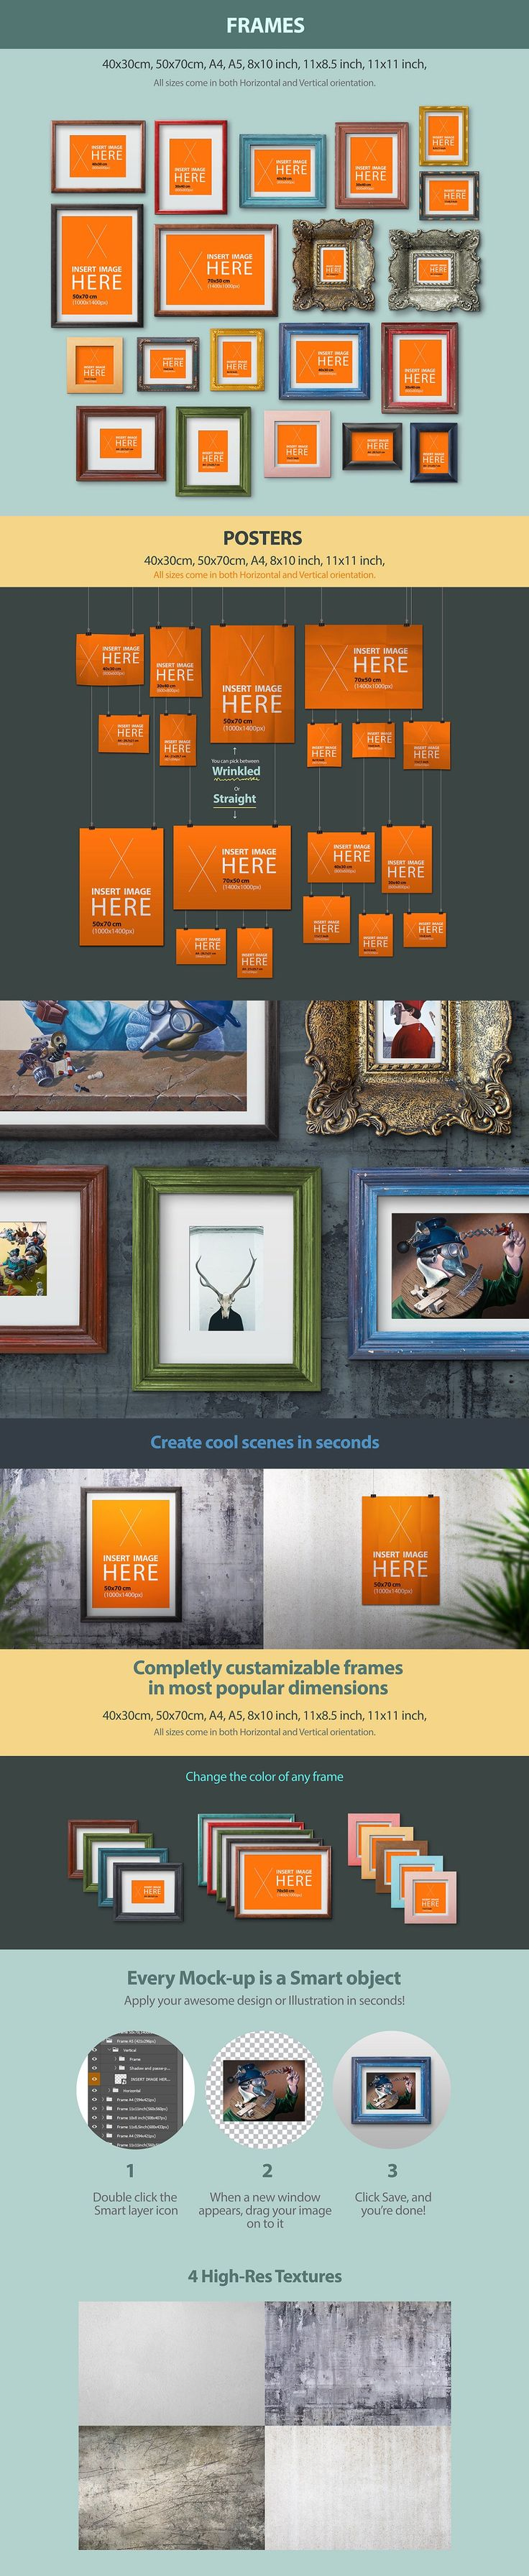 Design your poster free - Free Download This Week Frames And Posters Mockup To Show Off Your Art Or Projects